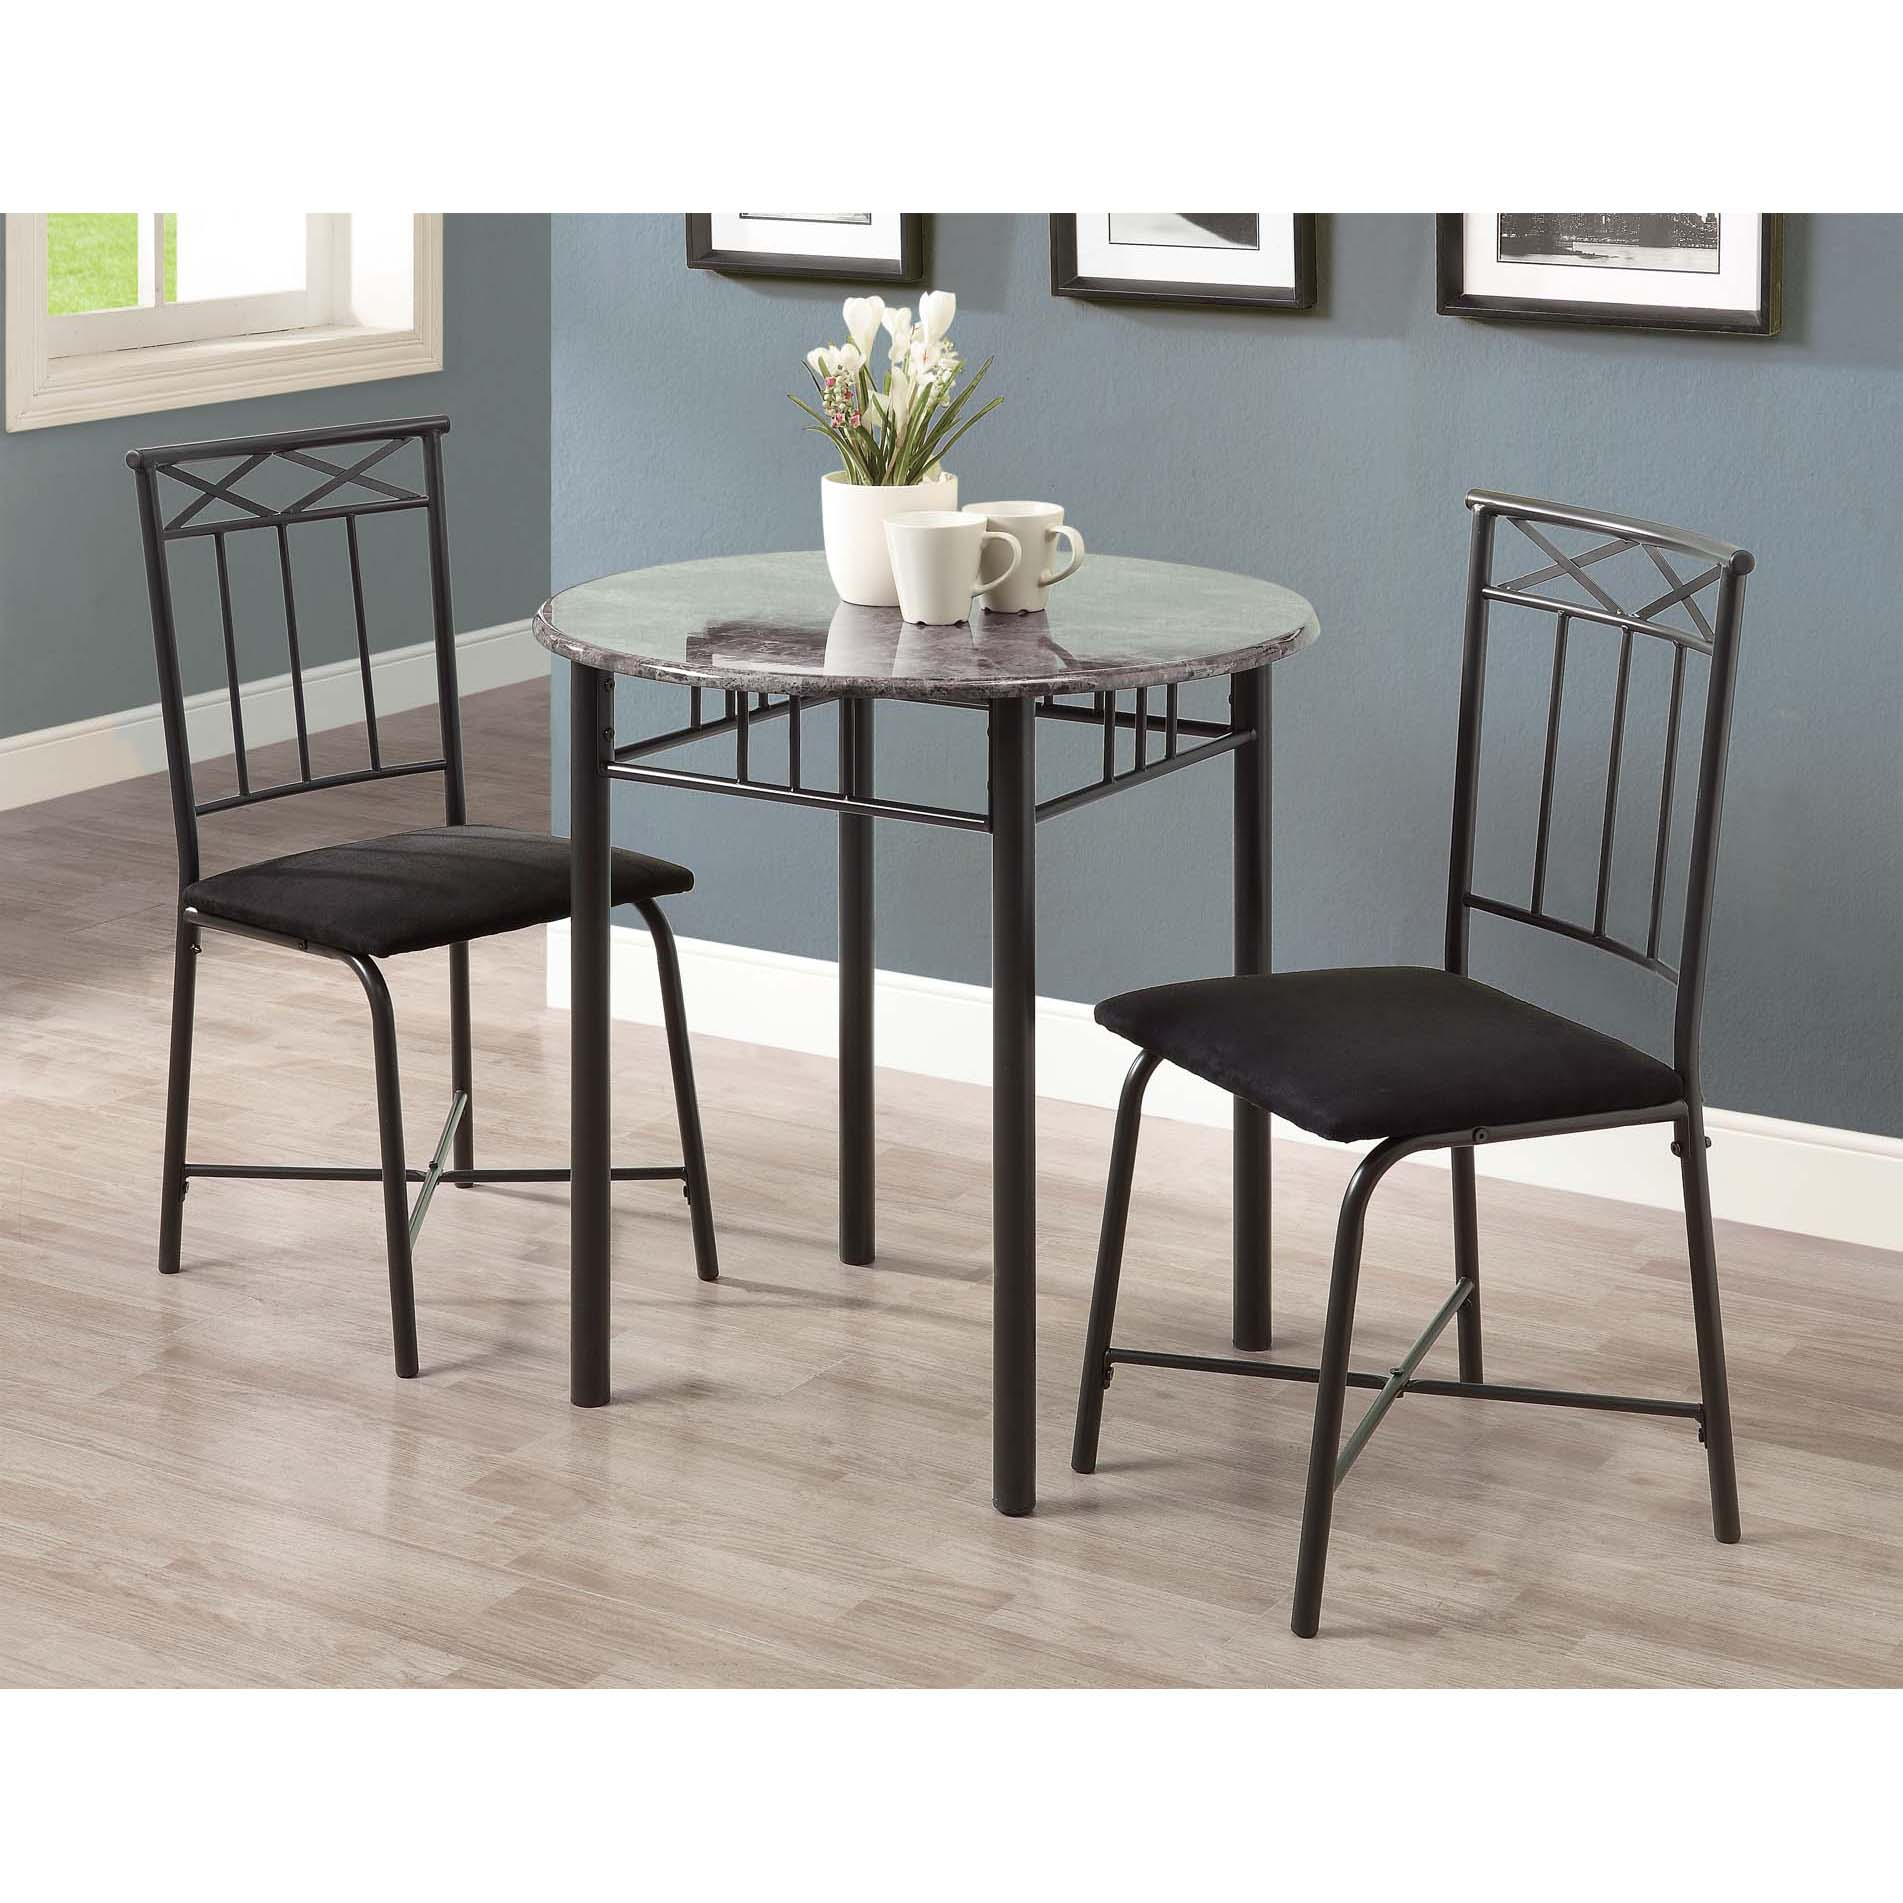 Grey Marble Charcoal Metal 3 piece Bistro Set Free Shipping